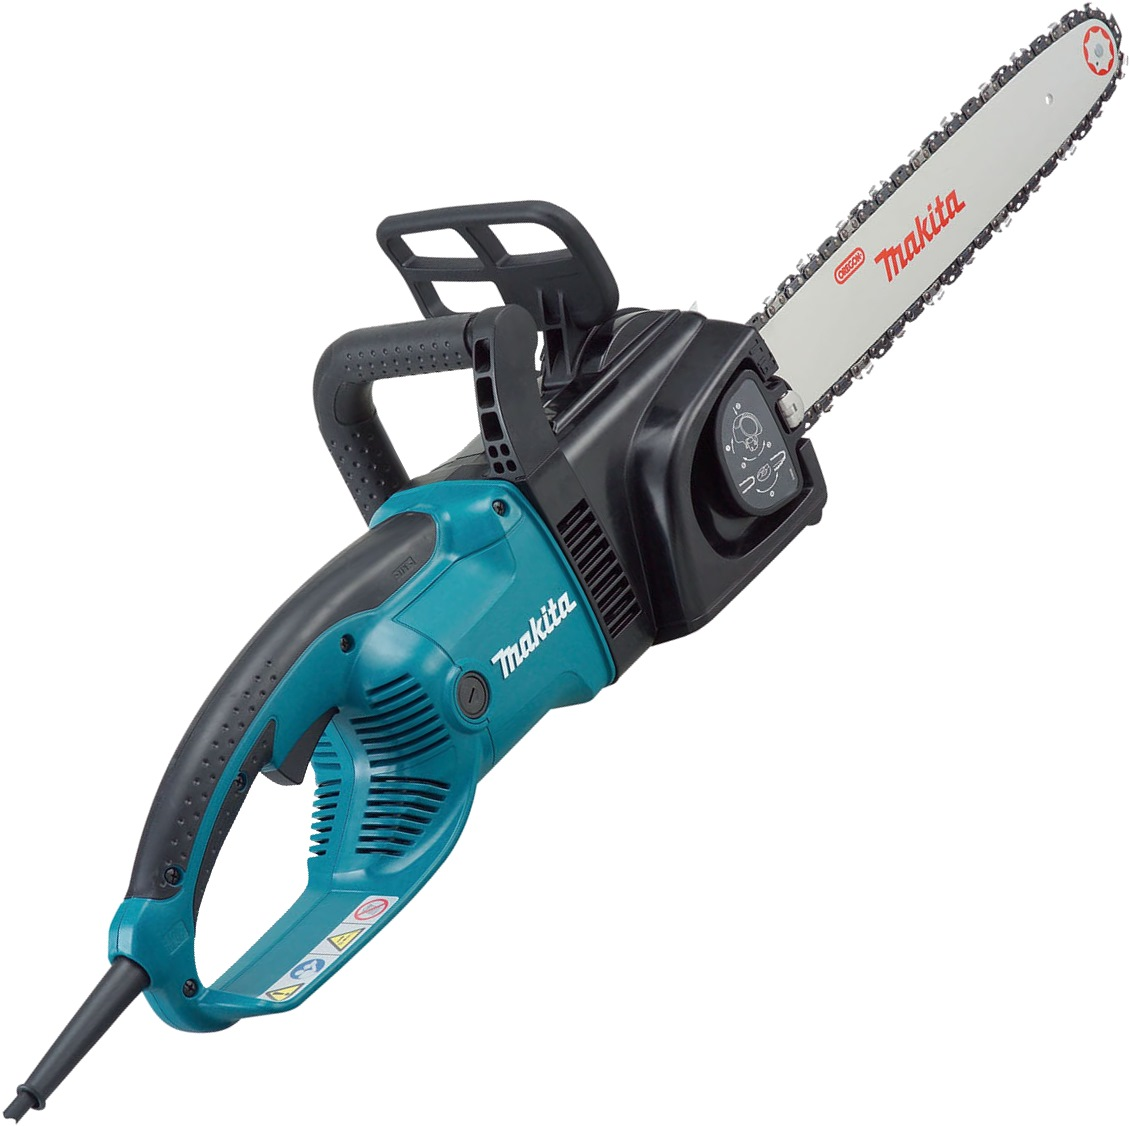 Makita Electric Chain Saw Uc4030a Mowers Amp Outdoor